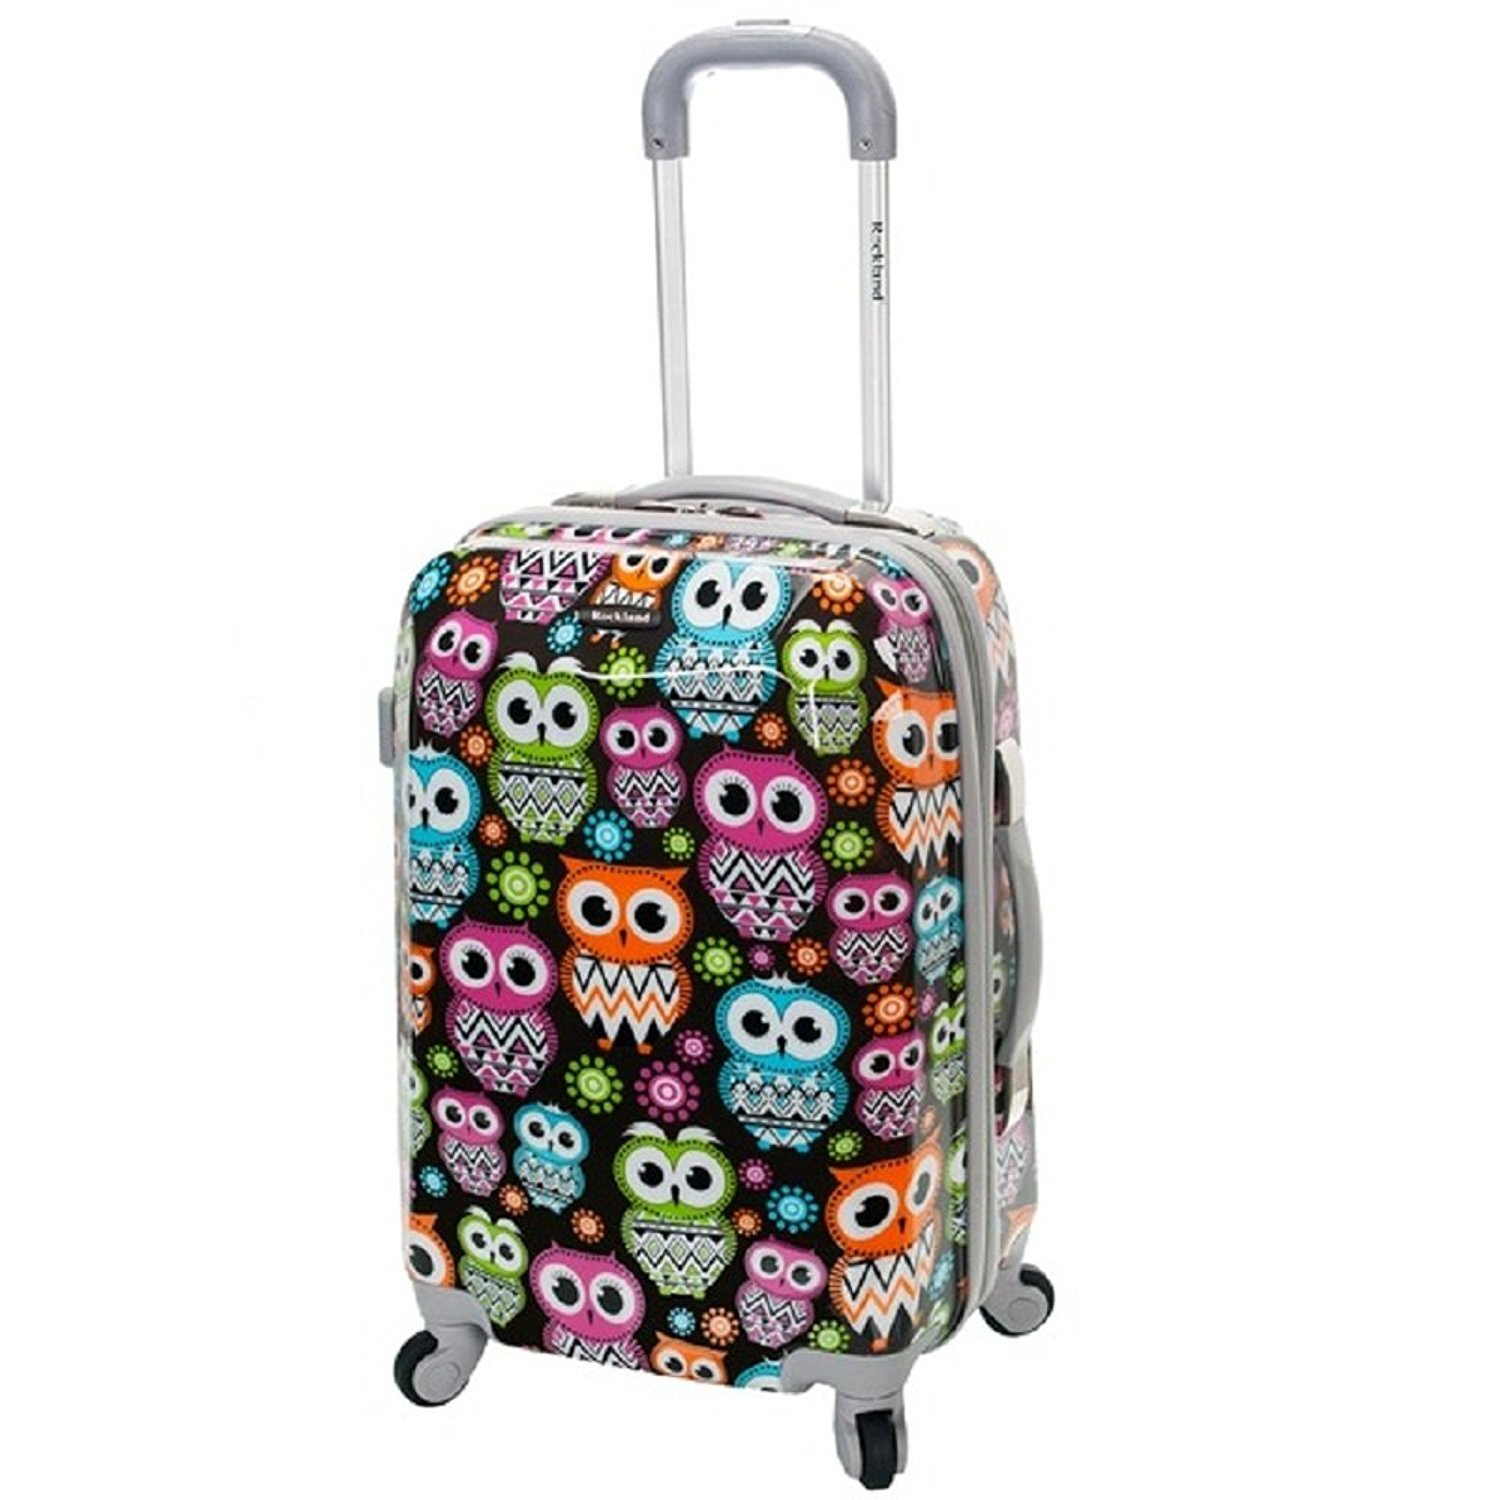 3d5118bb4f5 Get Quotations · DSOS Girls Cute Owl Flower Themed Carry Suitcase Kids  Hardtop Rainbow Floral Luggage